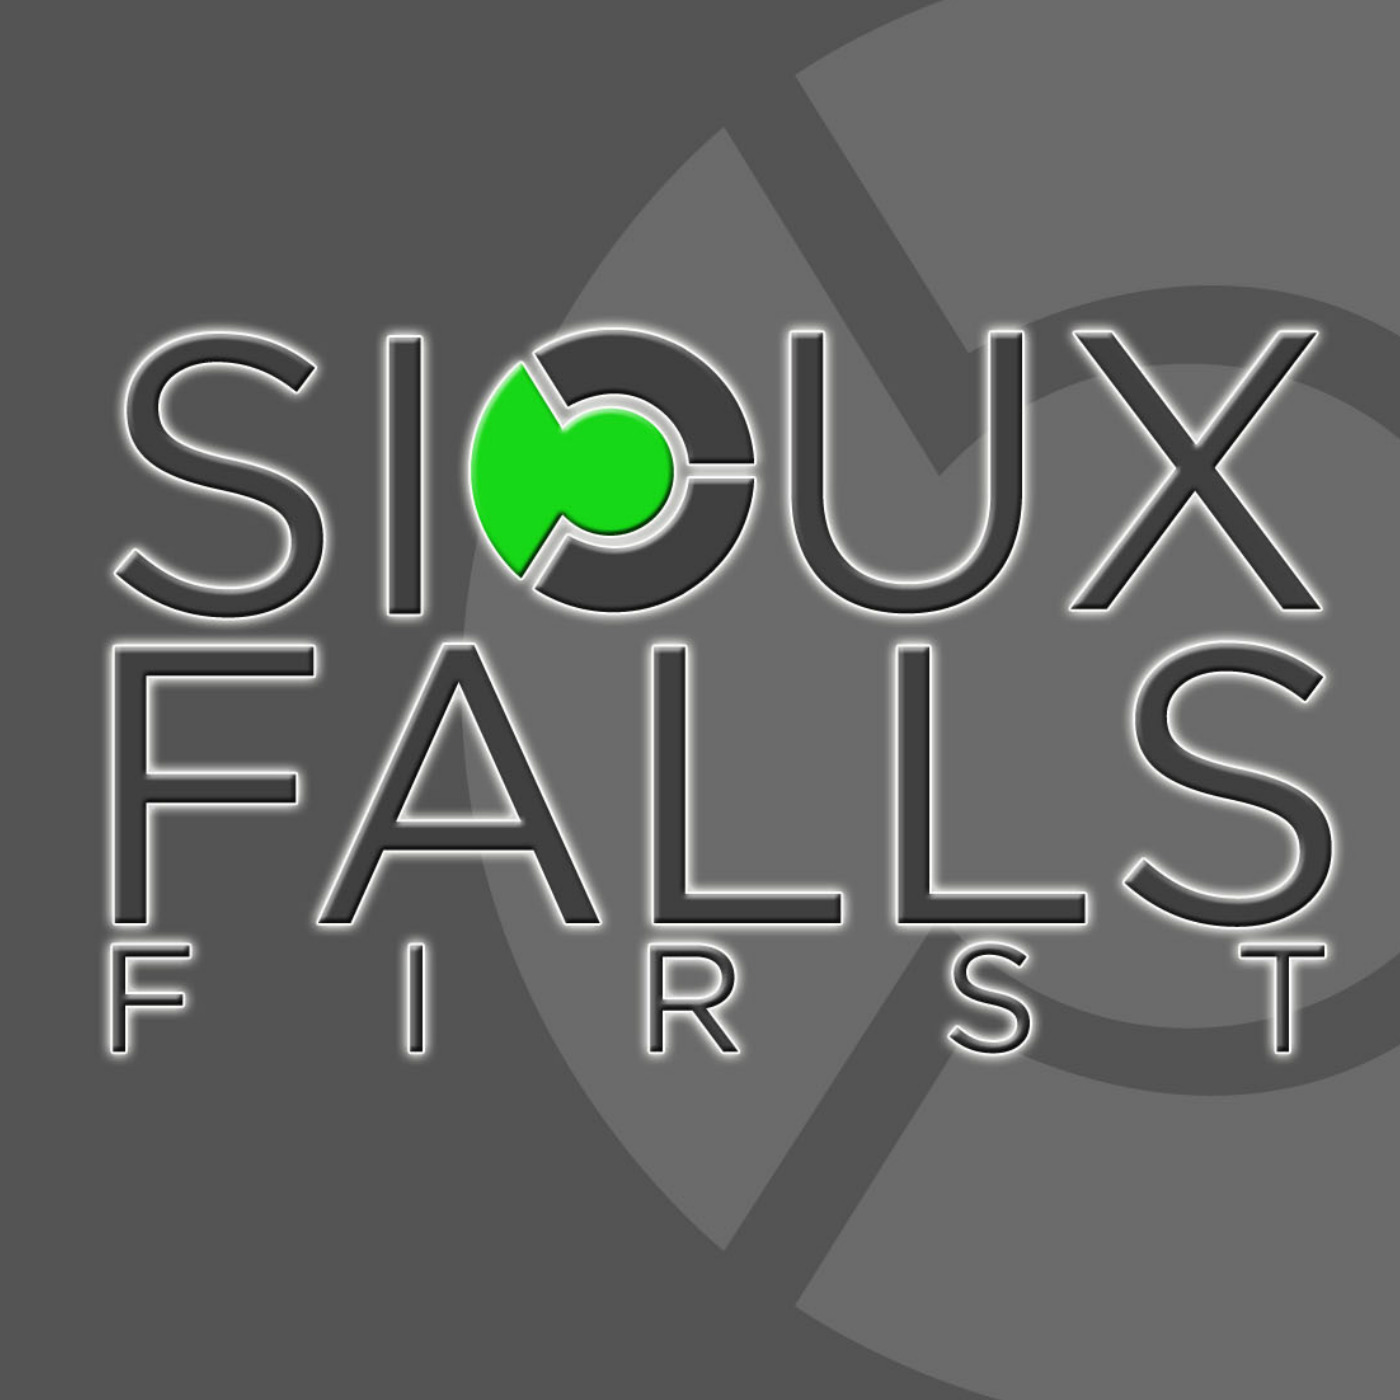 Sioux Falls First: Audio